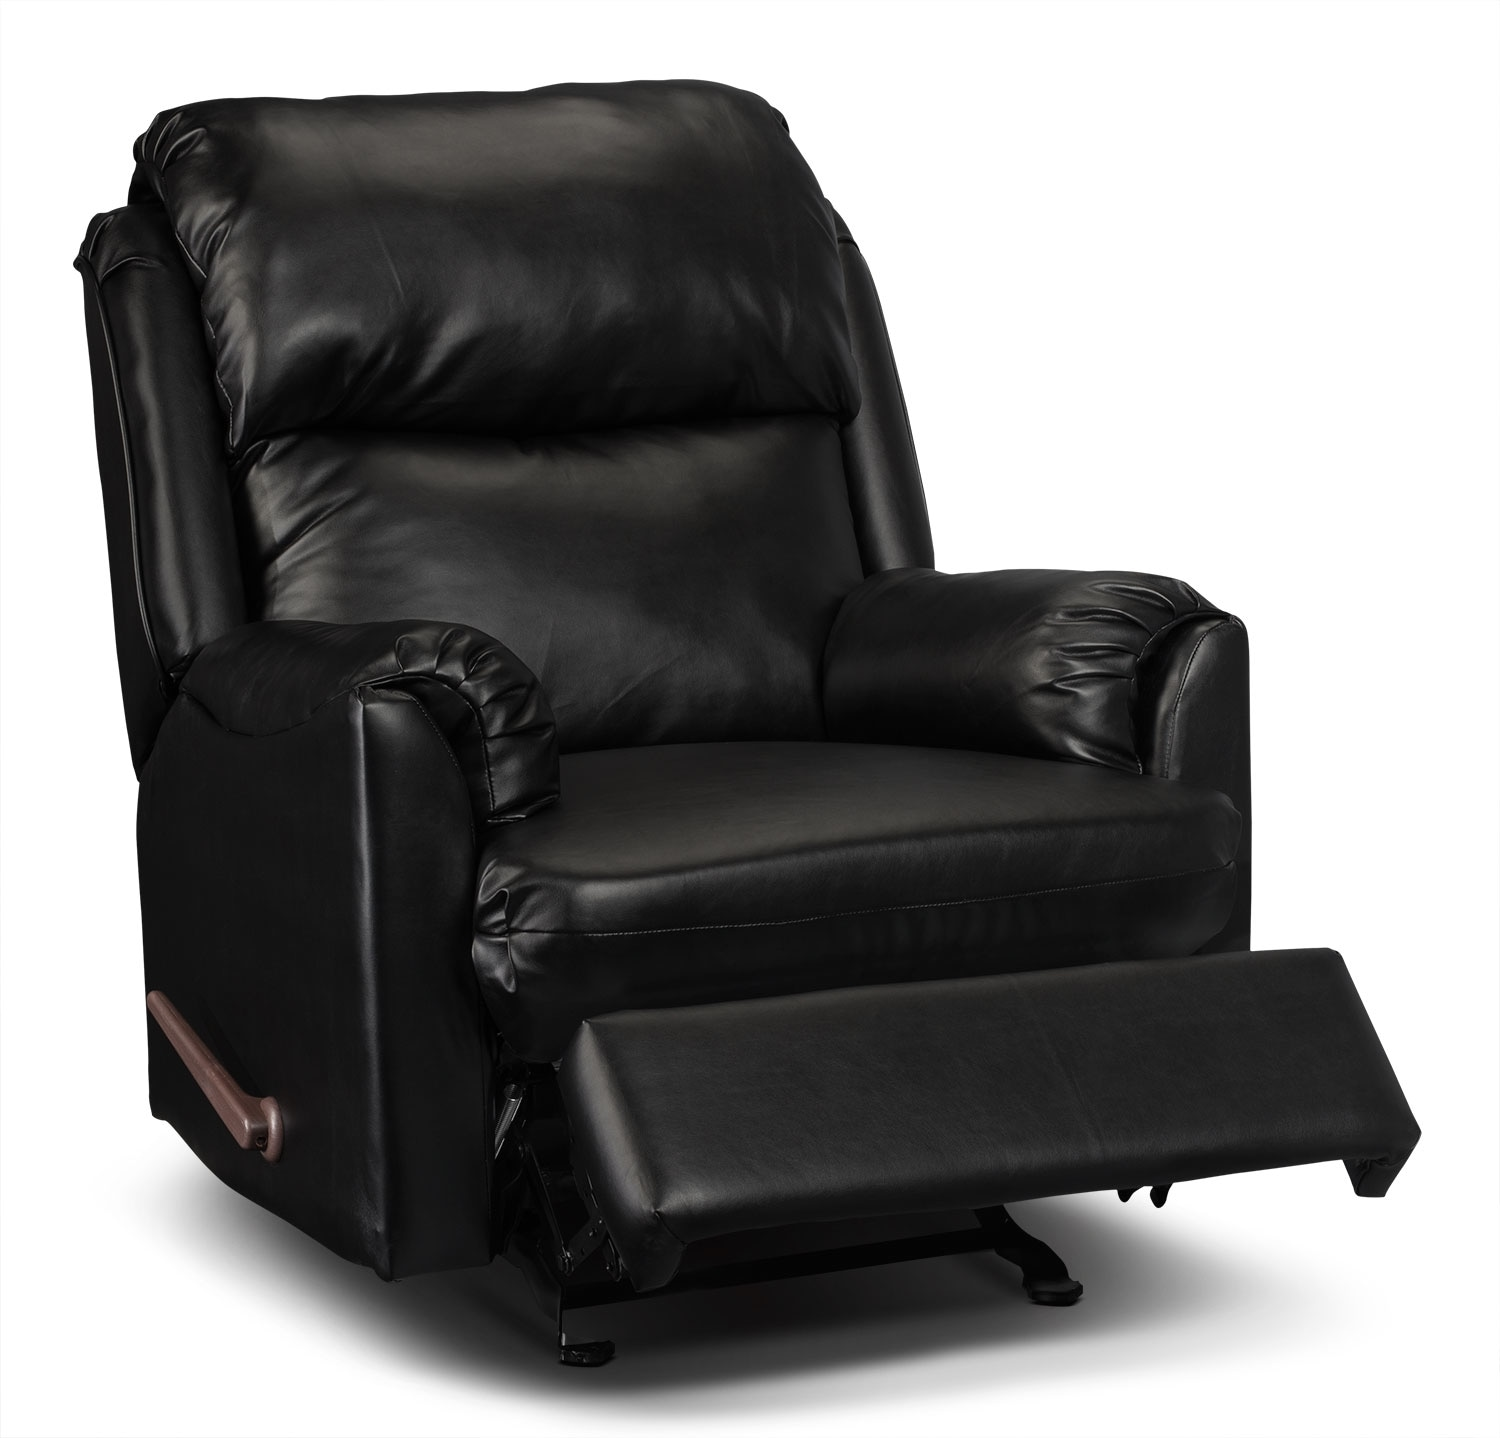 Drogba faux leather recliner black the brick for Chair recliner